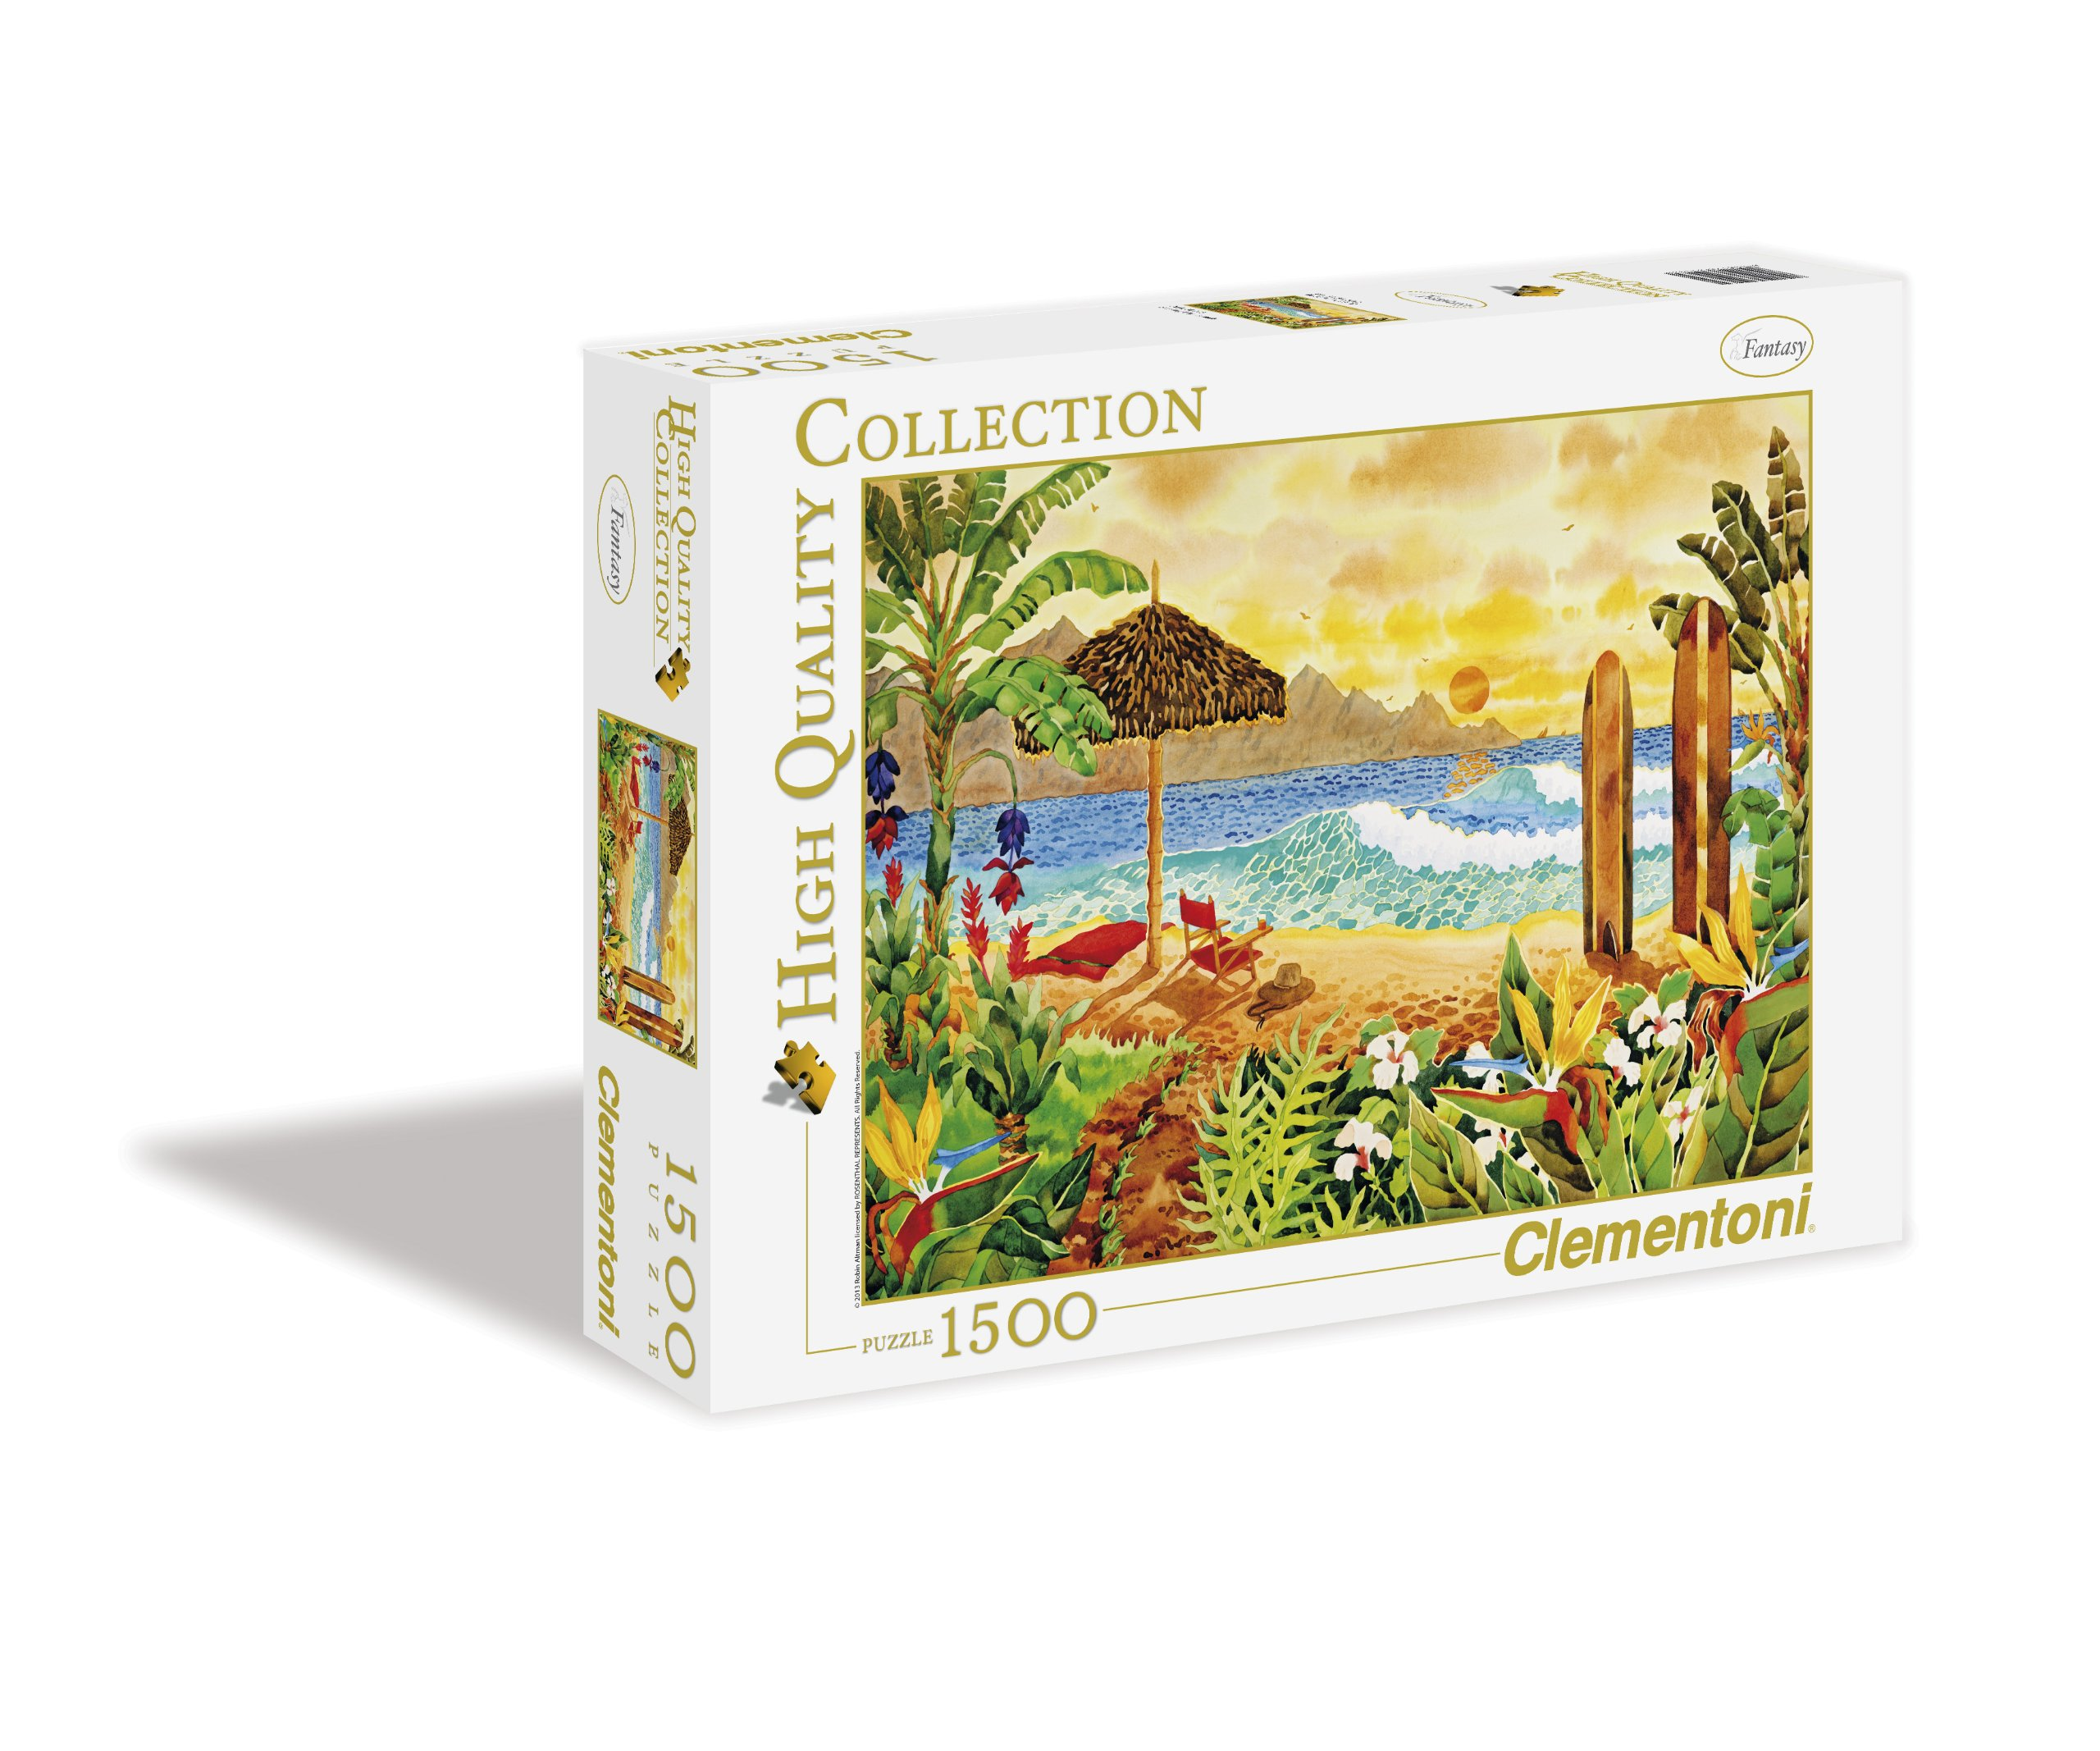 Clementoni Surfing the Islands 1500 Piece Jigsaw Puzzle